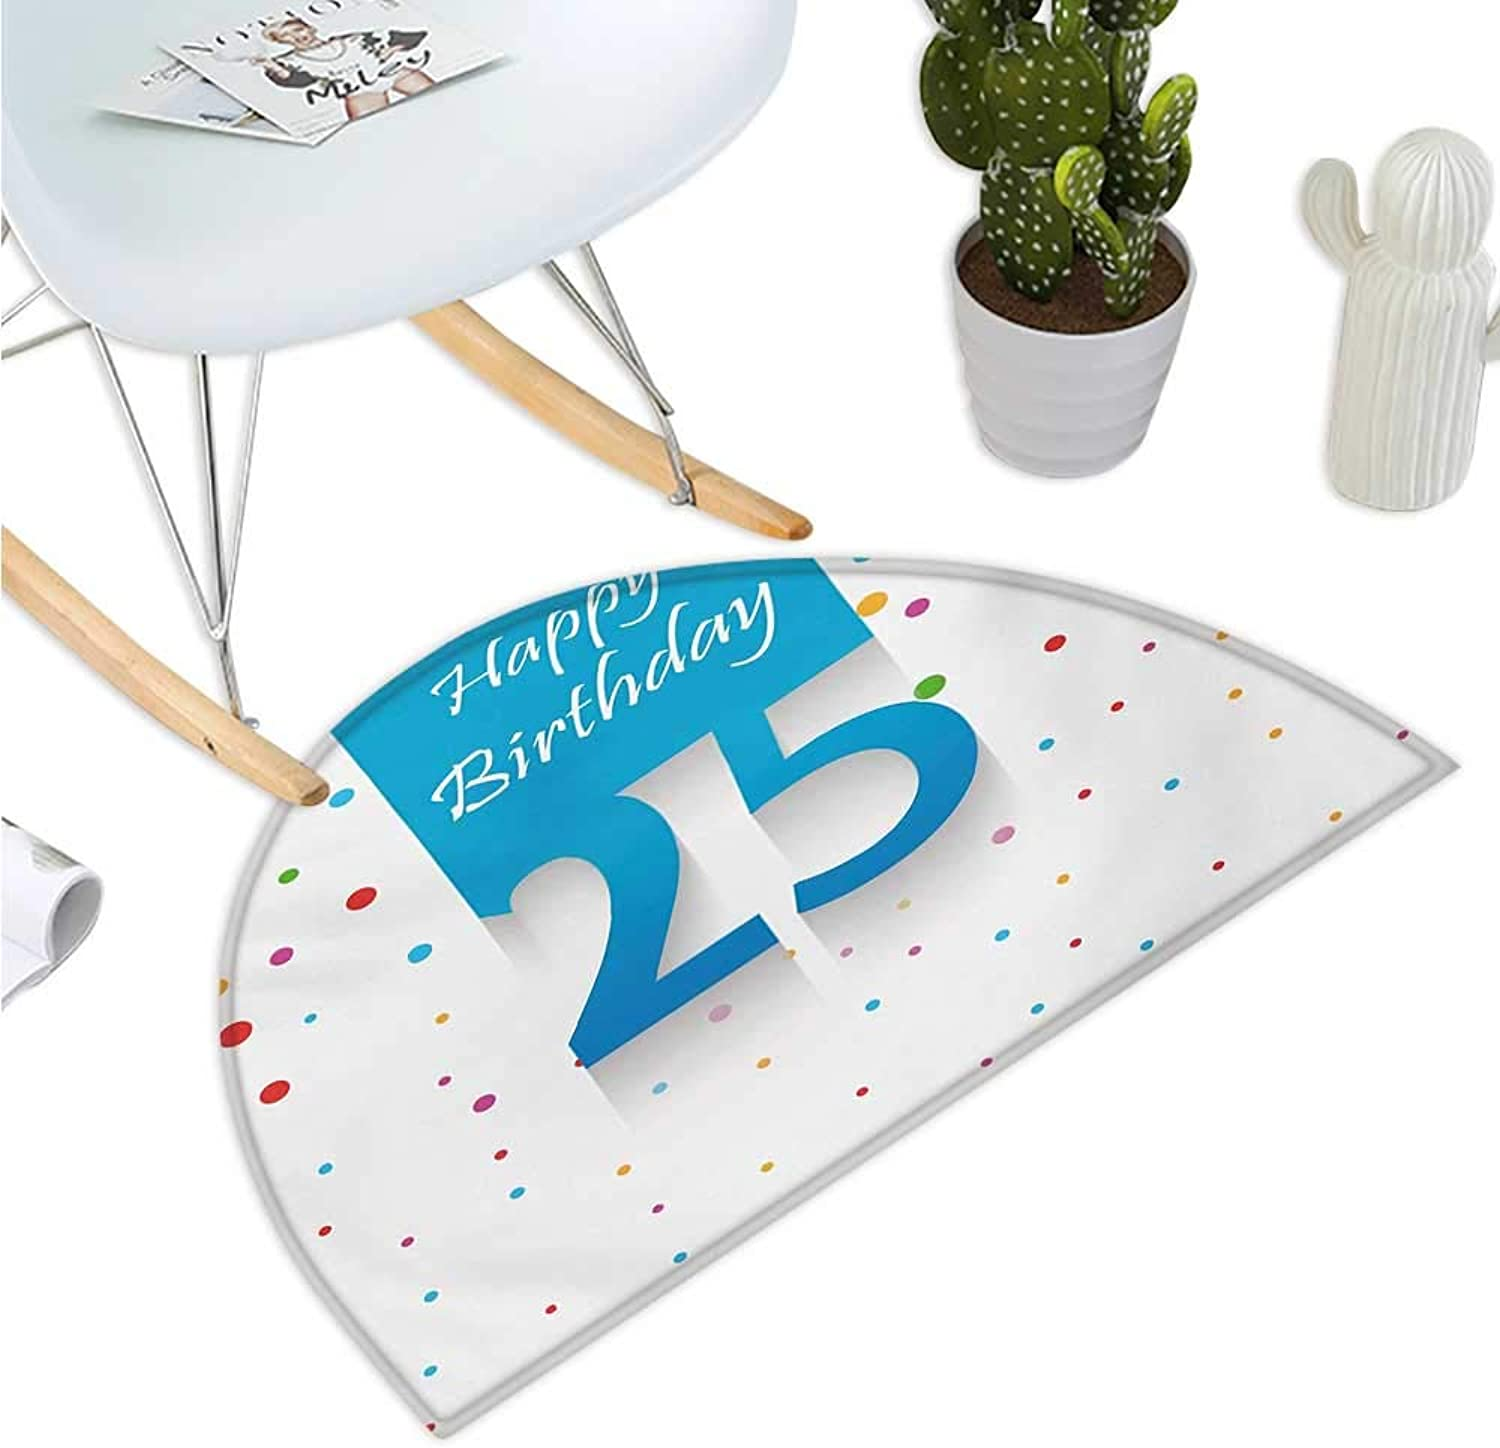 25th Birthday Semicircle Doormat Big and Small Polka Dots Confetti Rain and bluee Square Hand Written Print Entry Door Mat H 35.4  xD 53.1  Multicolor